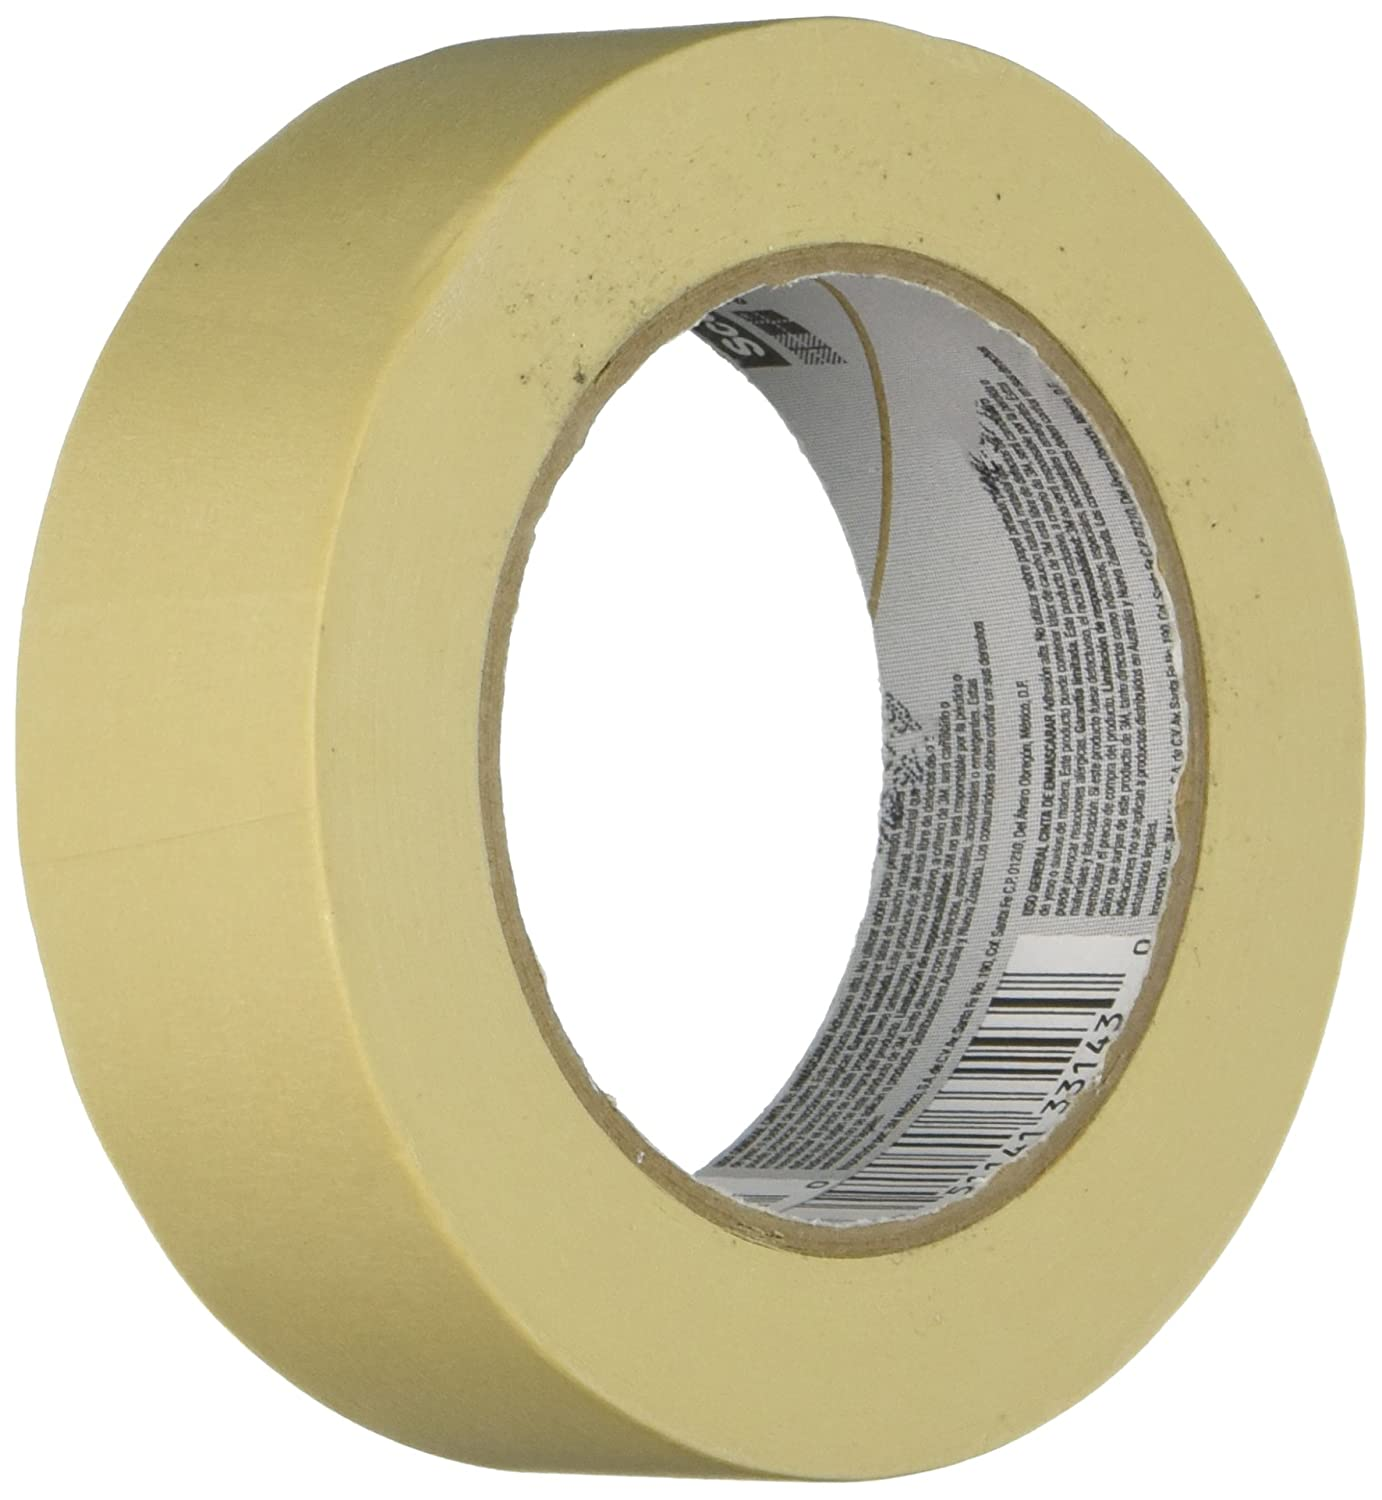 3M Scotch 2020 Masking/Painter's Tape - 1.41 in Width - Identifying Number: 2020-36ECC - 33143 [Price is per ROLL]